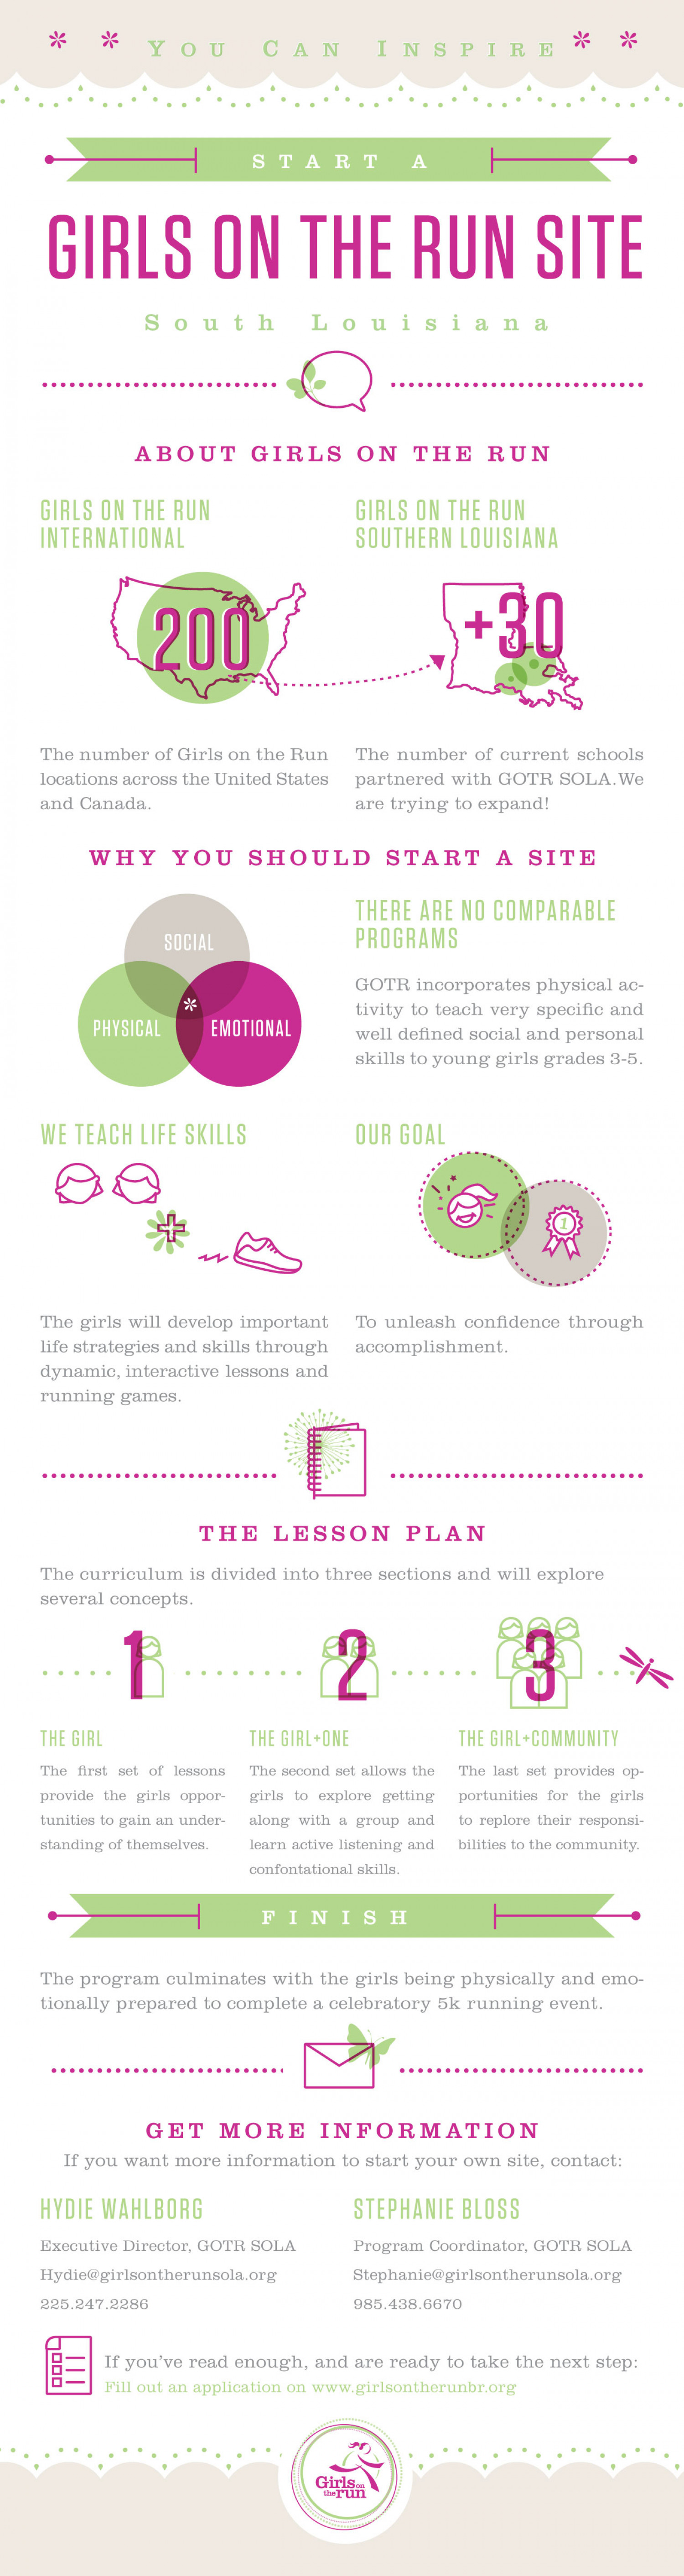 Girls on the Run Infographic